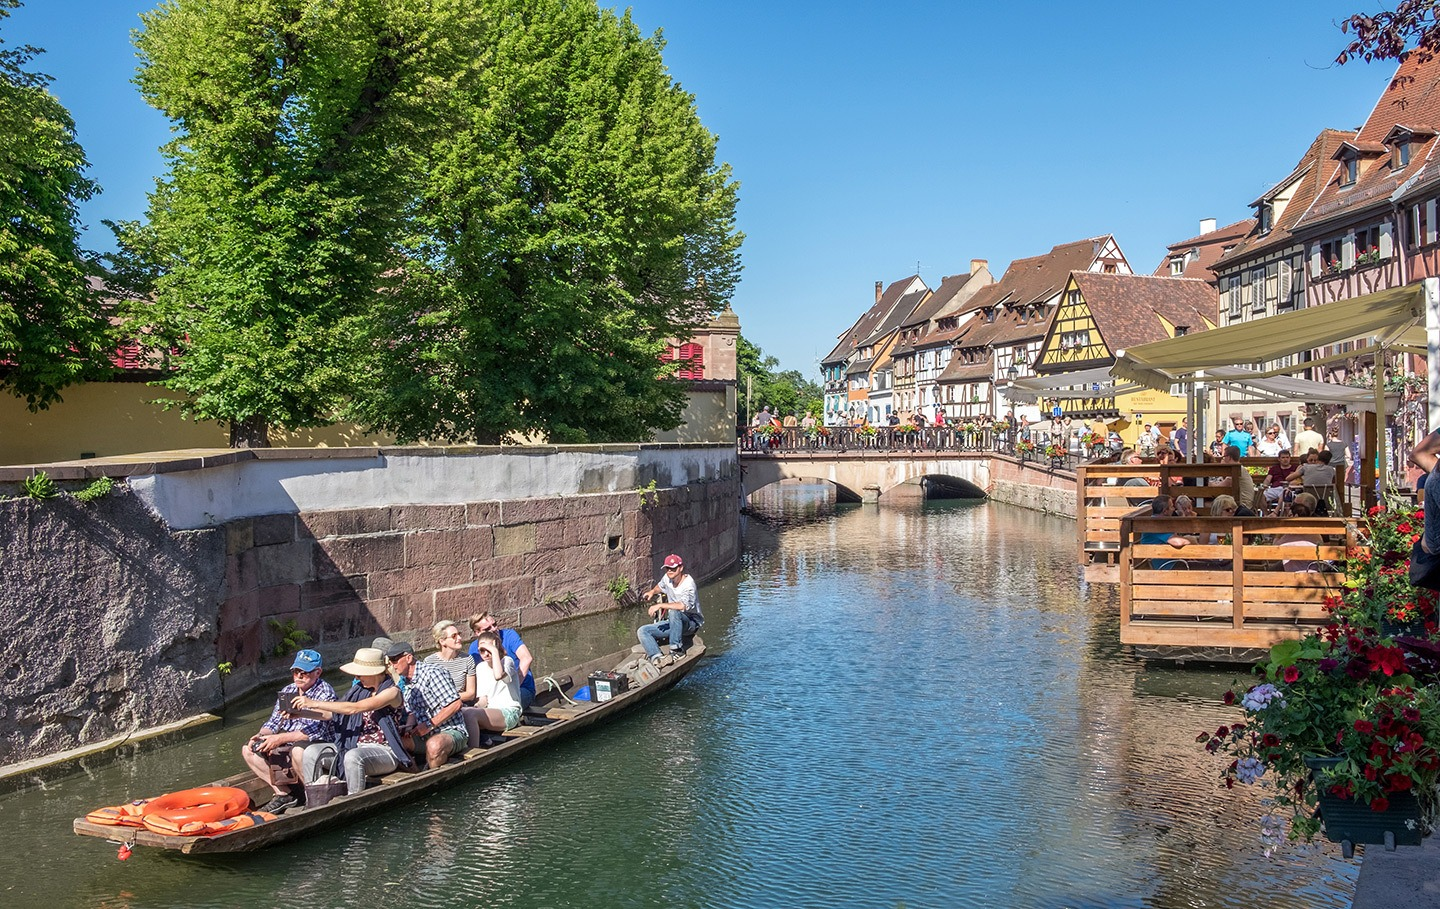 Exploring the canals in Colmar Alsace's Petit Venice, France